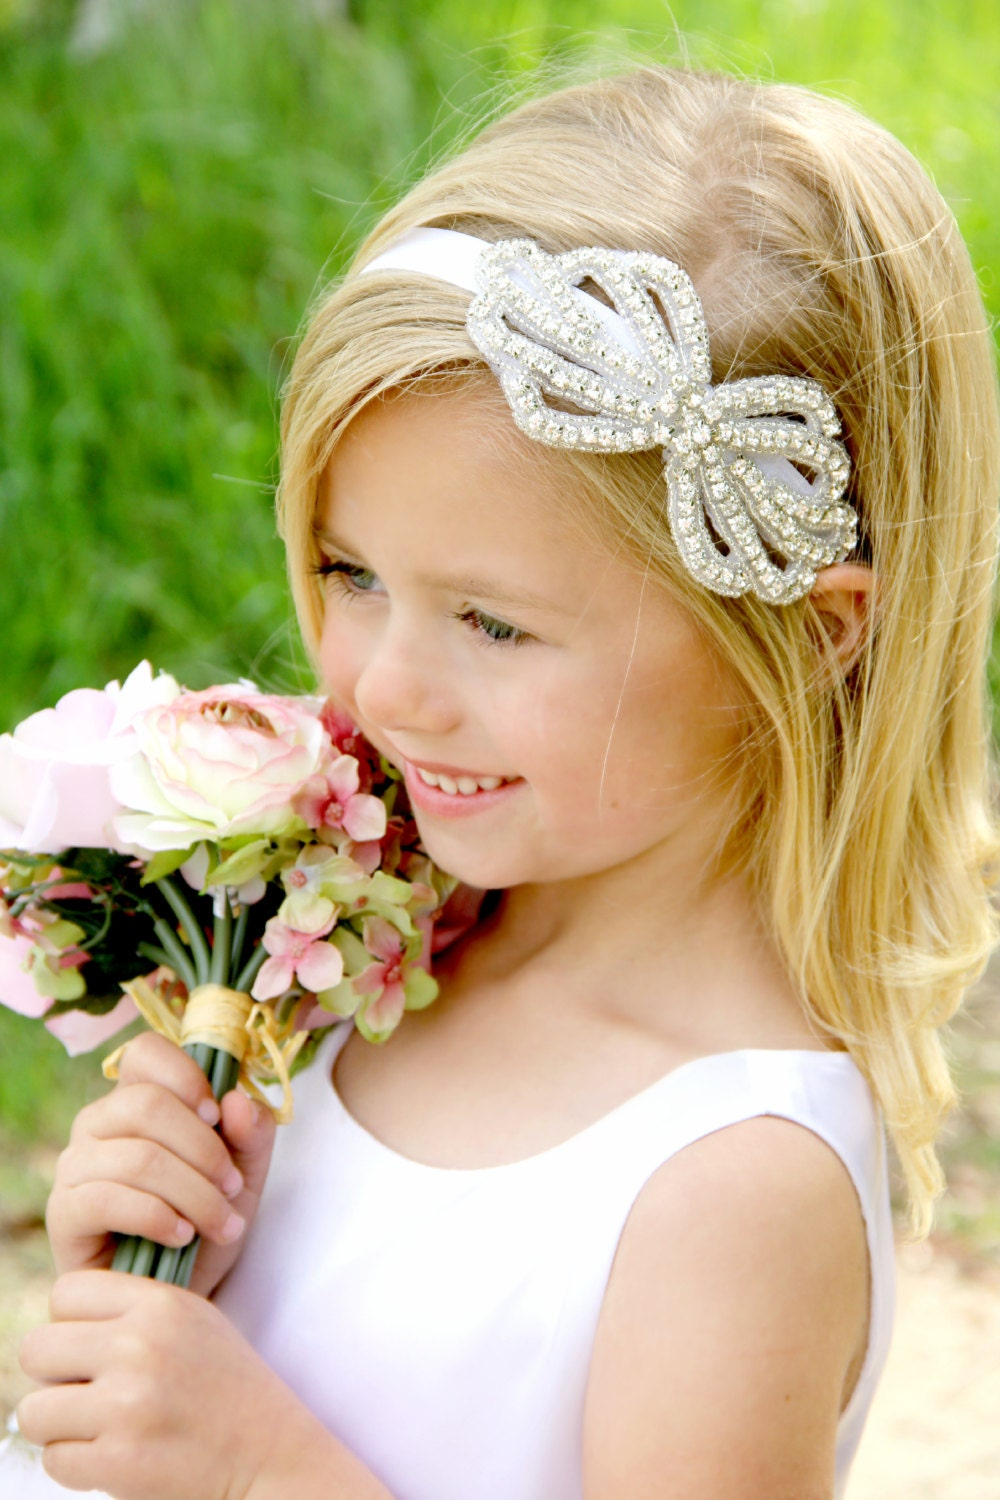 Flower girl headbands from Pink Princess are comfortable for long-wear, and fashionable. Click to shop our line and find the perfect style. TOP TEXT Offer applies to new subscribers only. By submitting your email, you agree to accept emails regarding new promotions and .